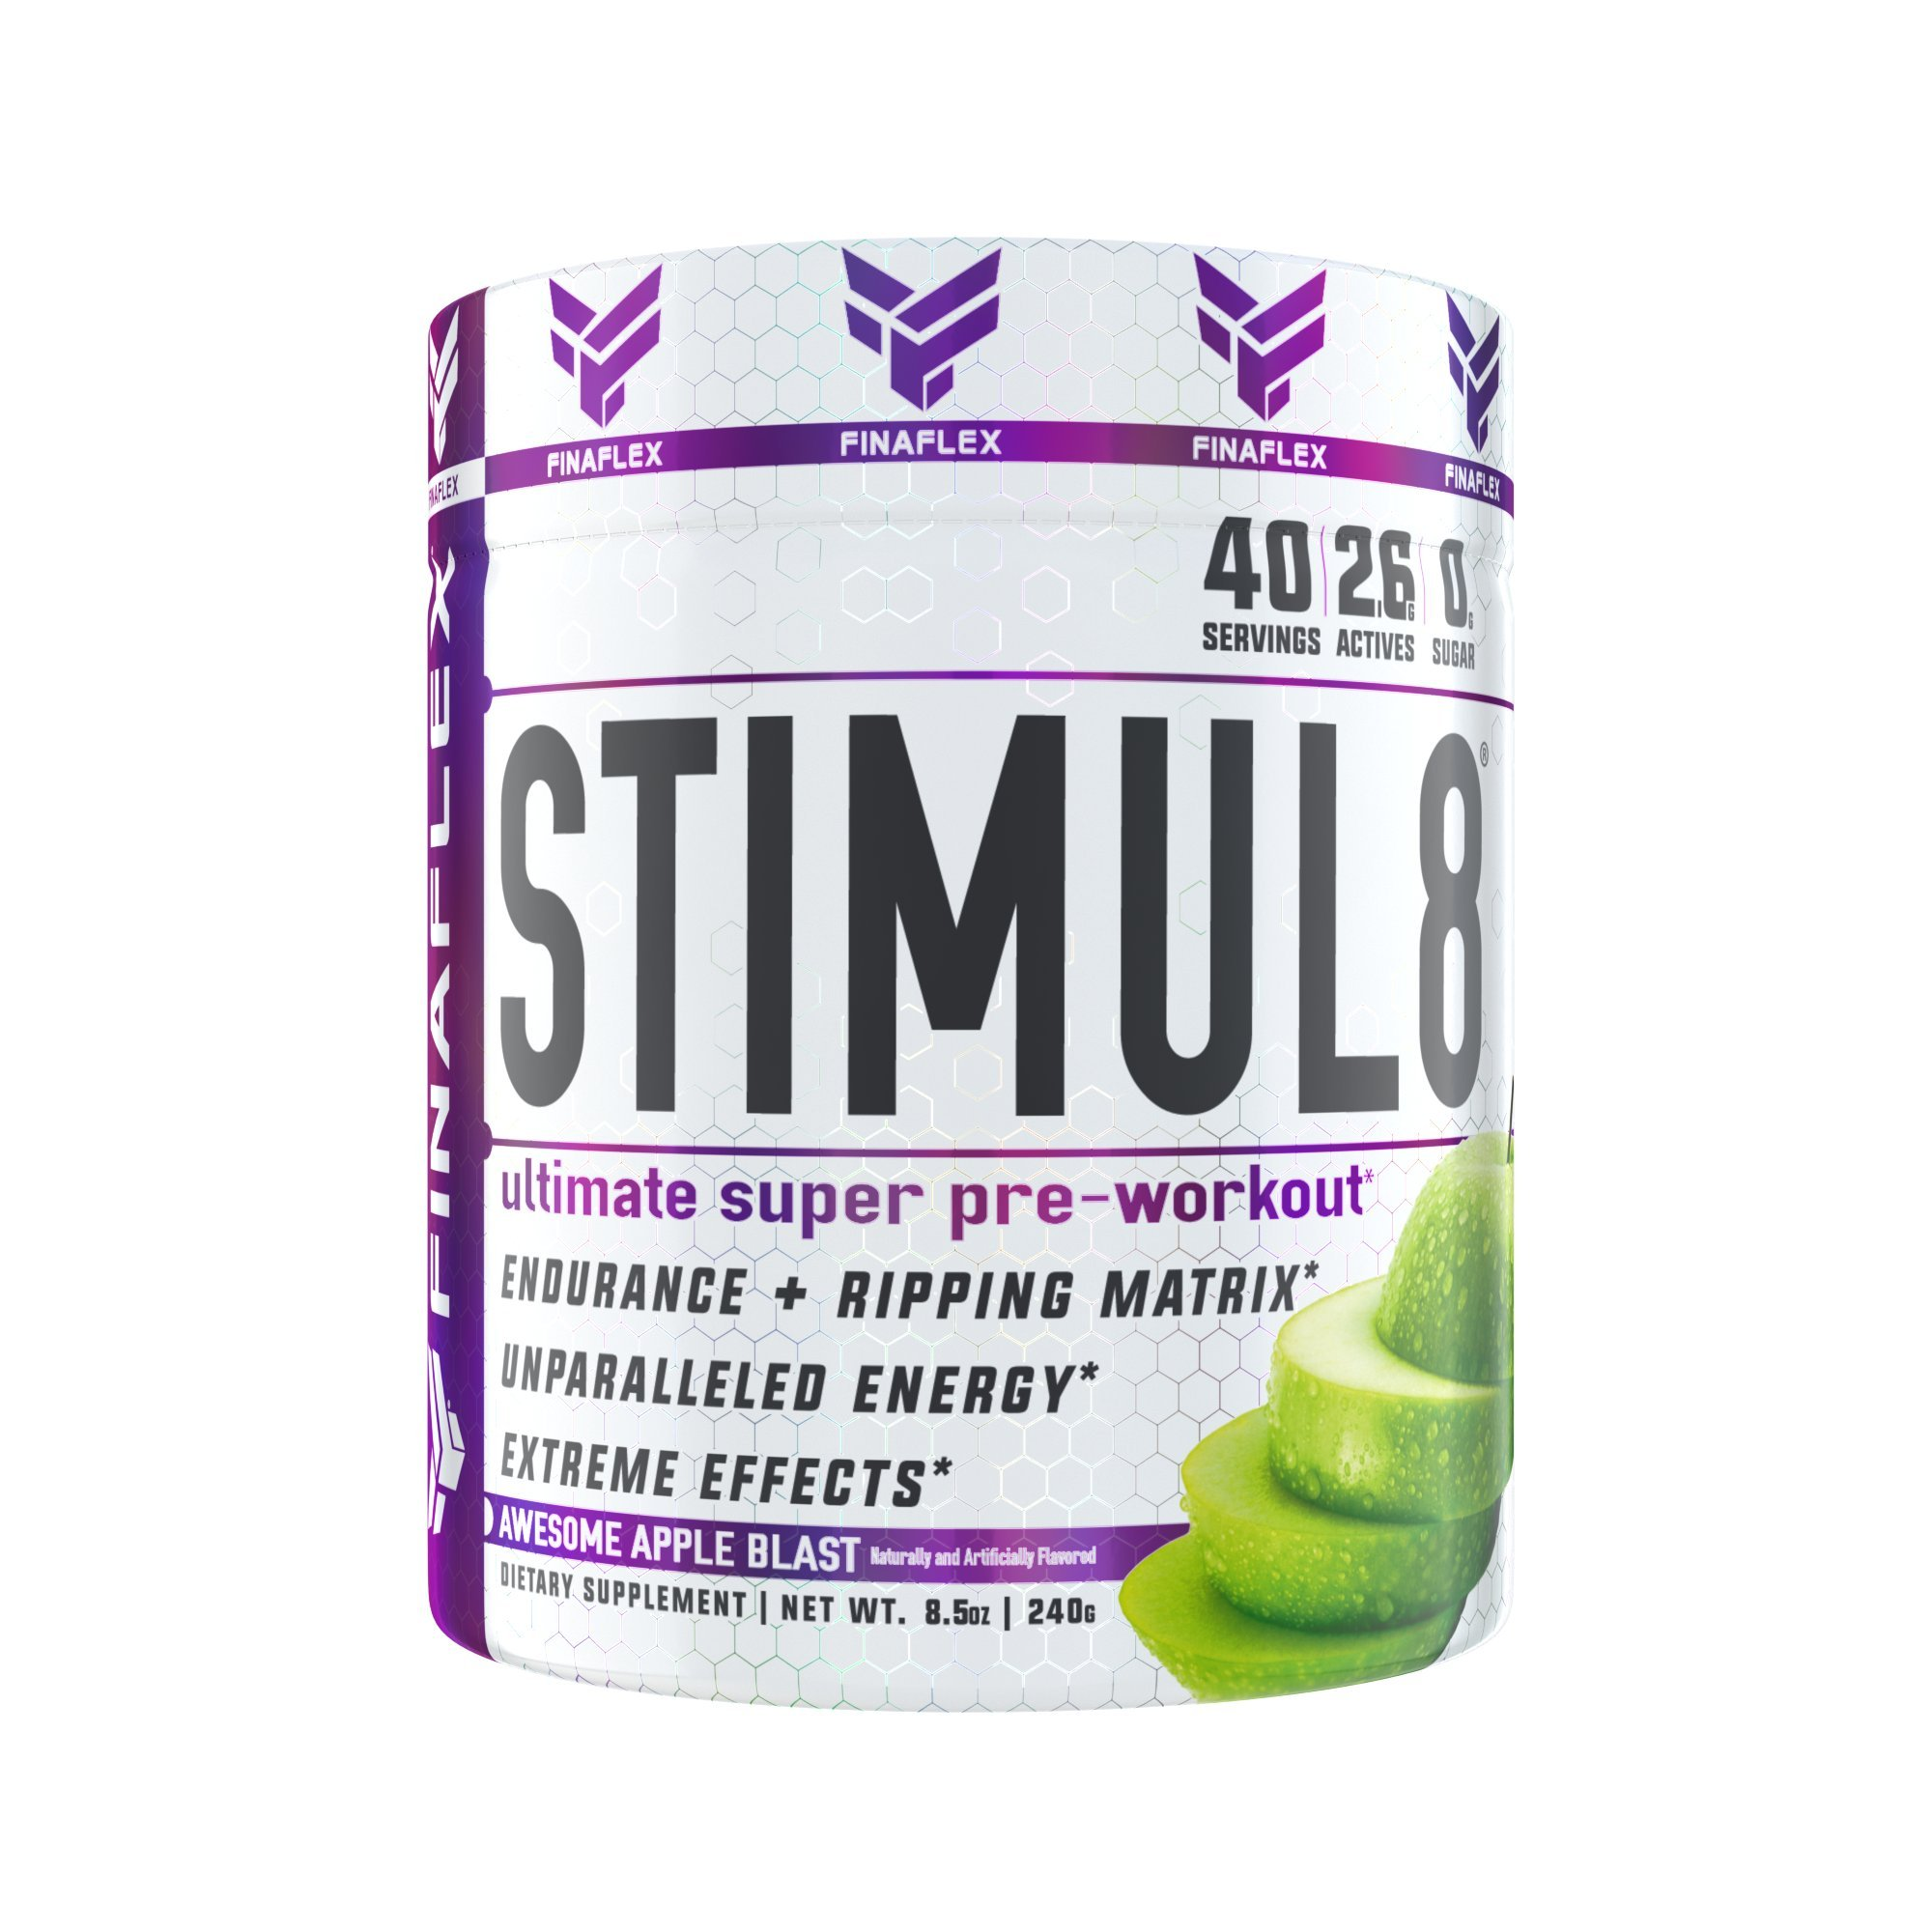 STIMUL8, Original Super Pre-Workout for Men and Women, Stimulate Workouts Like Never Before, Unparalleled Energy, Extreme Effects, Ultimate Preworkout, 40 Servings (Awesome Apple Blast)